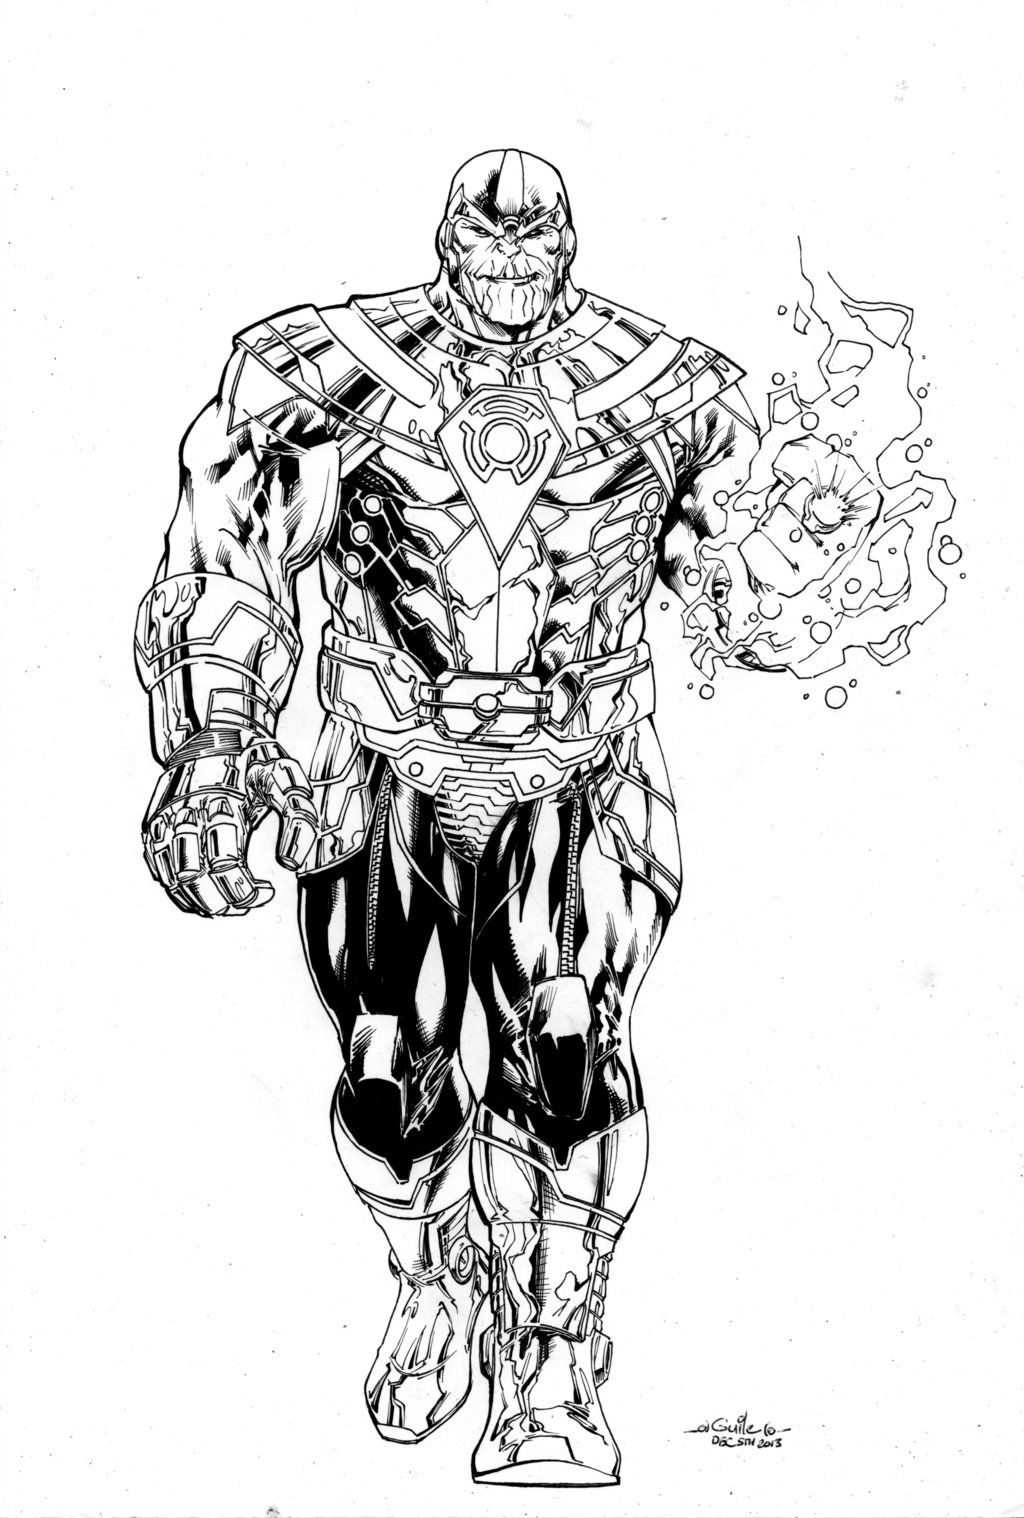 Thanos Of Sinestro Corps By Spiderguileviantart On